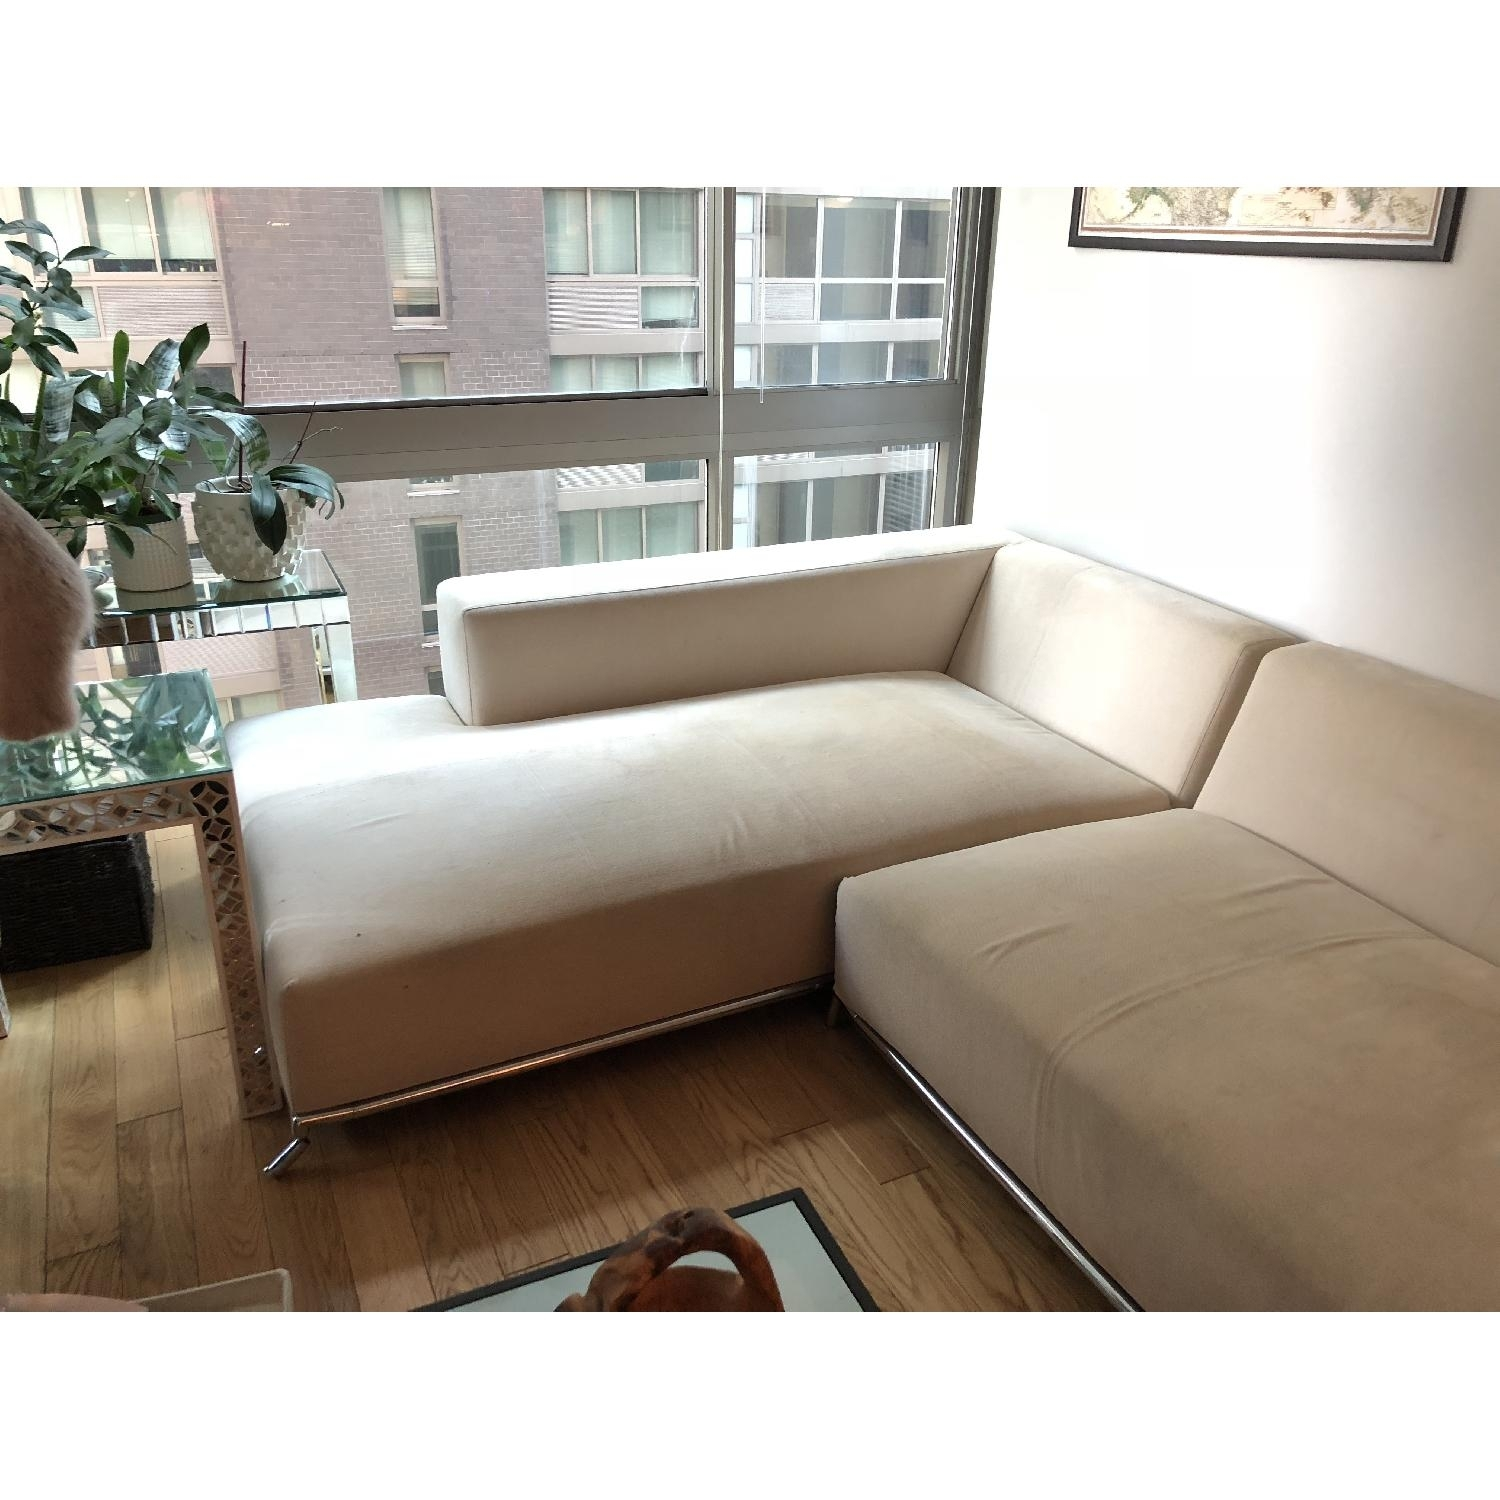 2 Piece Chaise Sectional Sofa | Baci Living Room Within Aspen 2 Piece Sleeper Sectionals With Laf Chaise (Image 1 of 25)